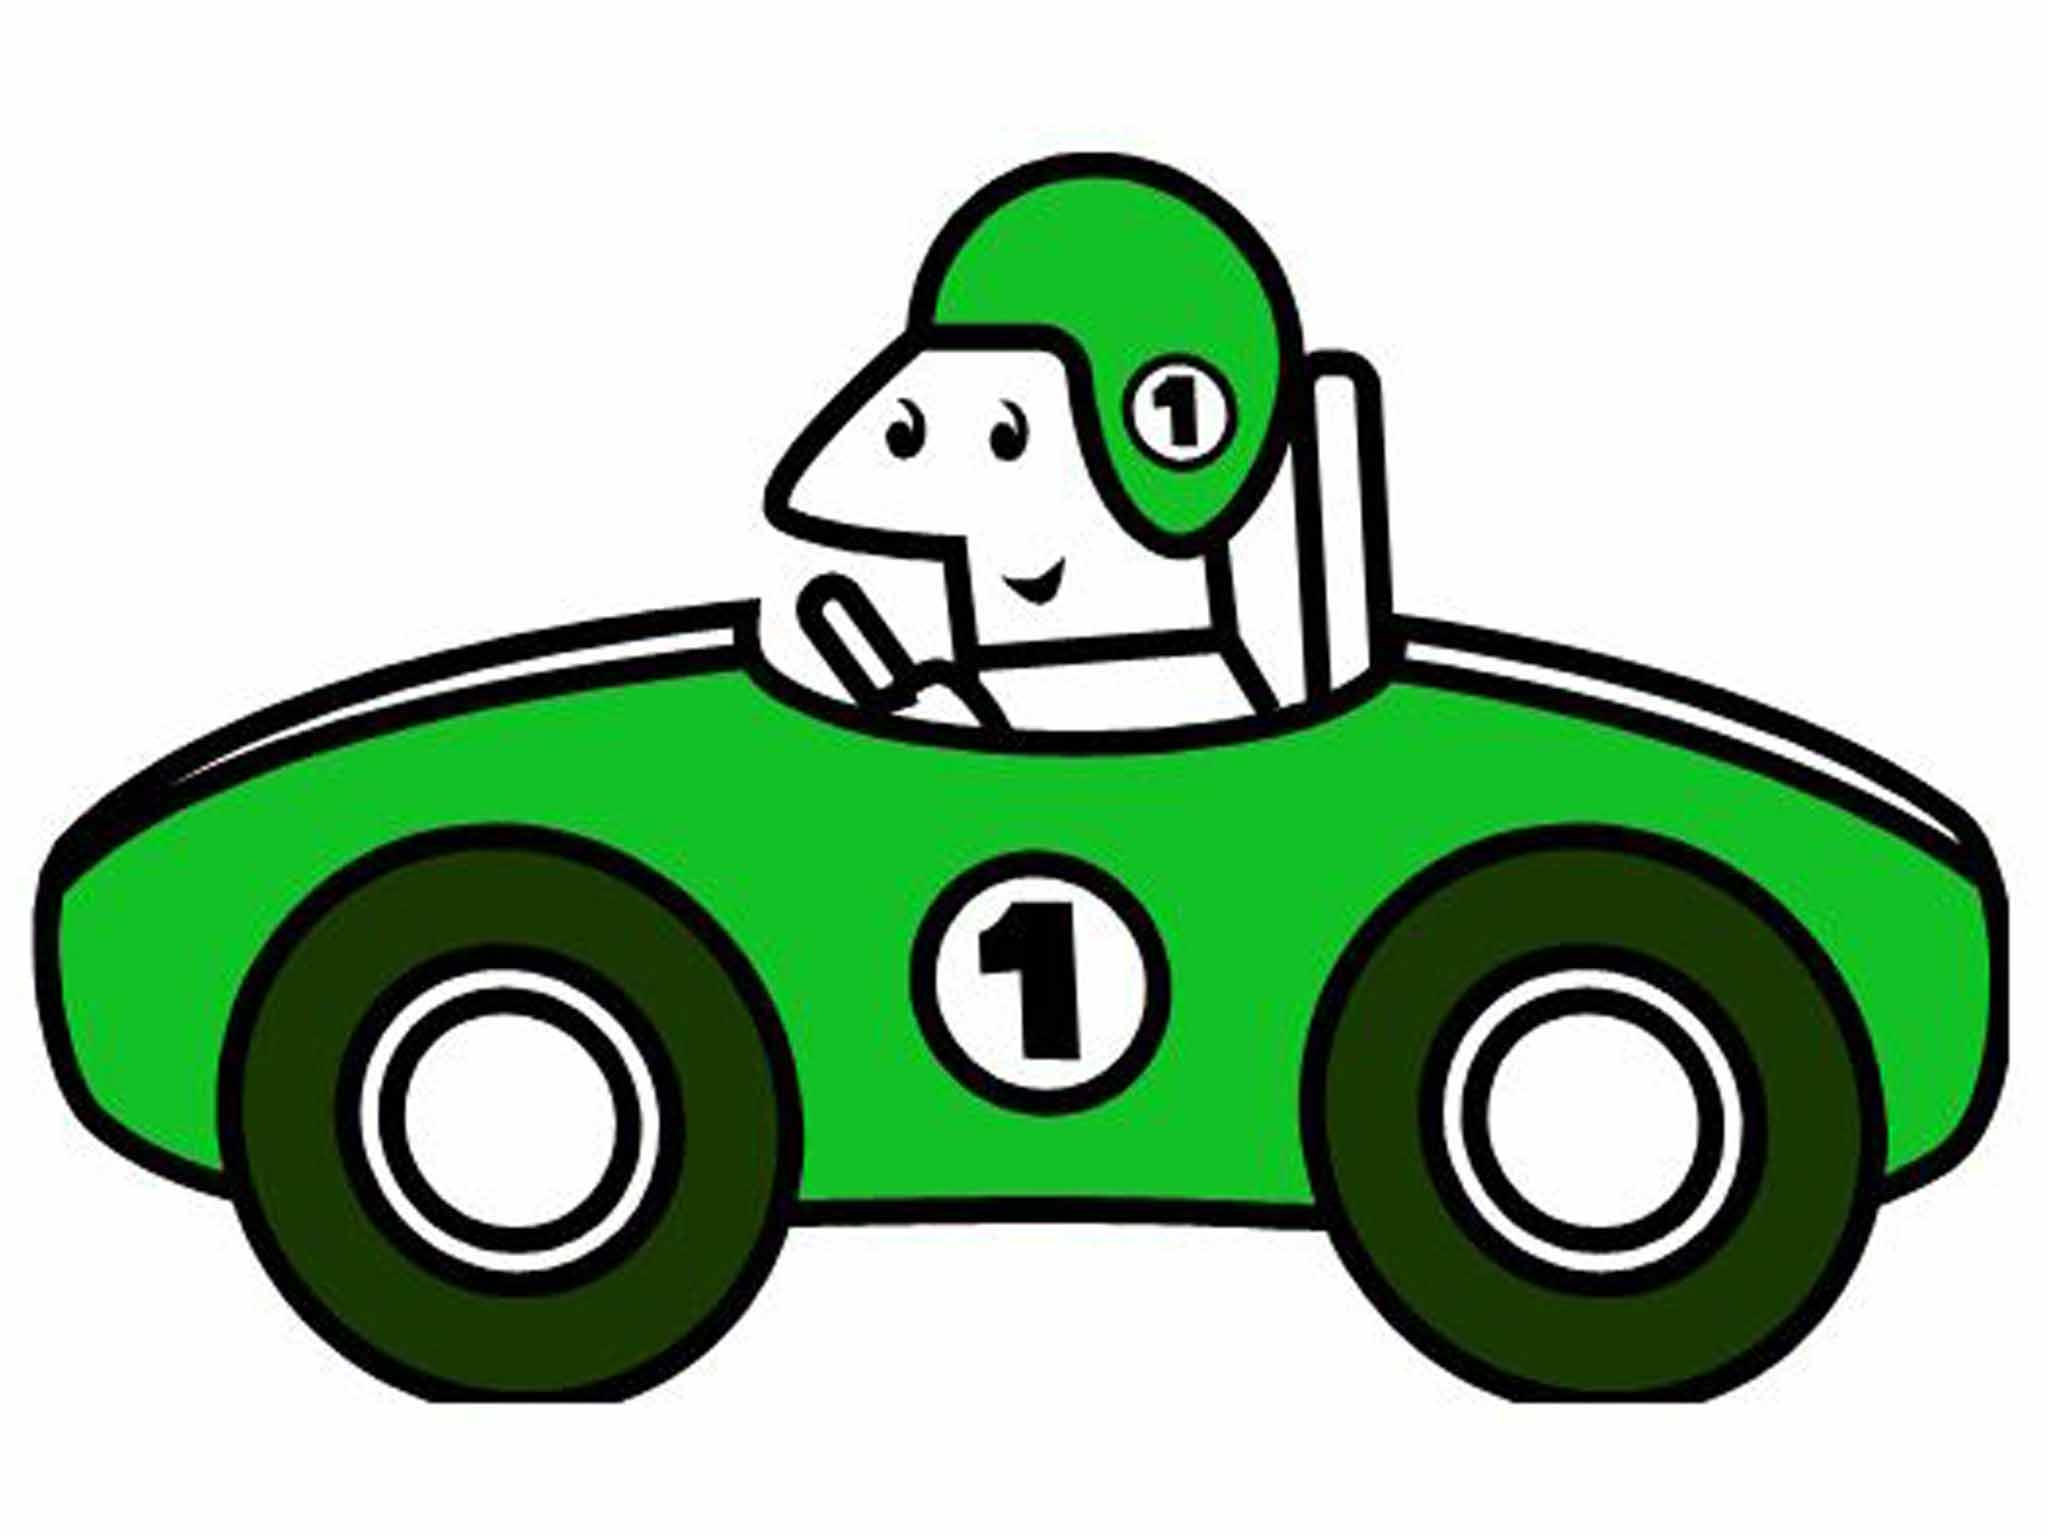 60 Free Race Car Clipart.